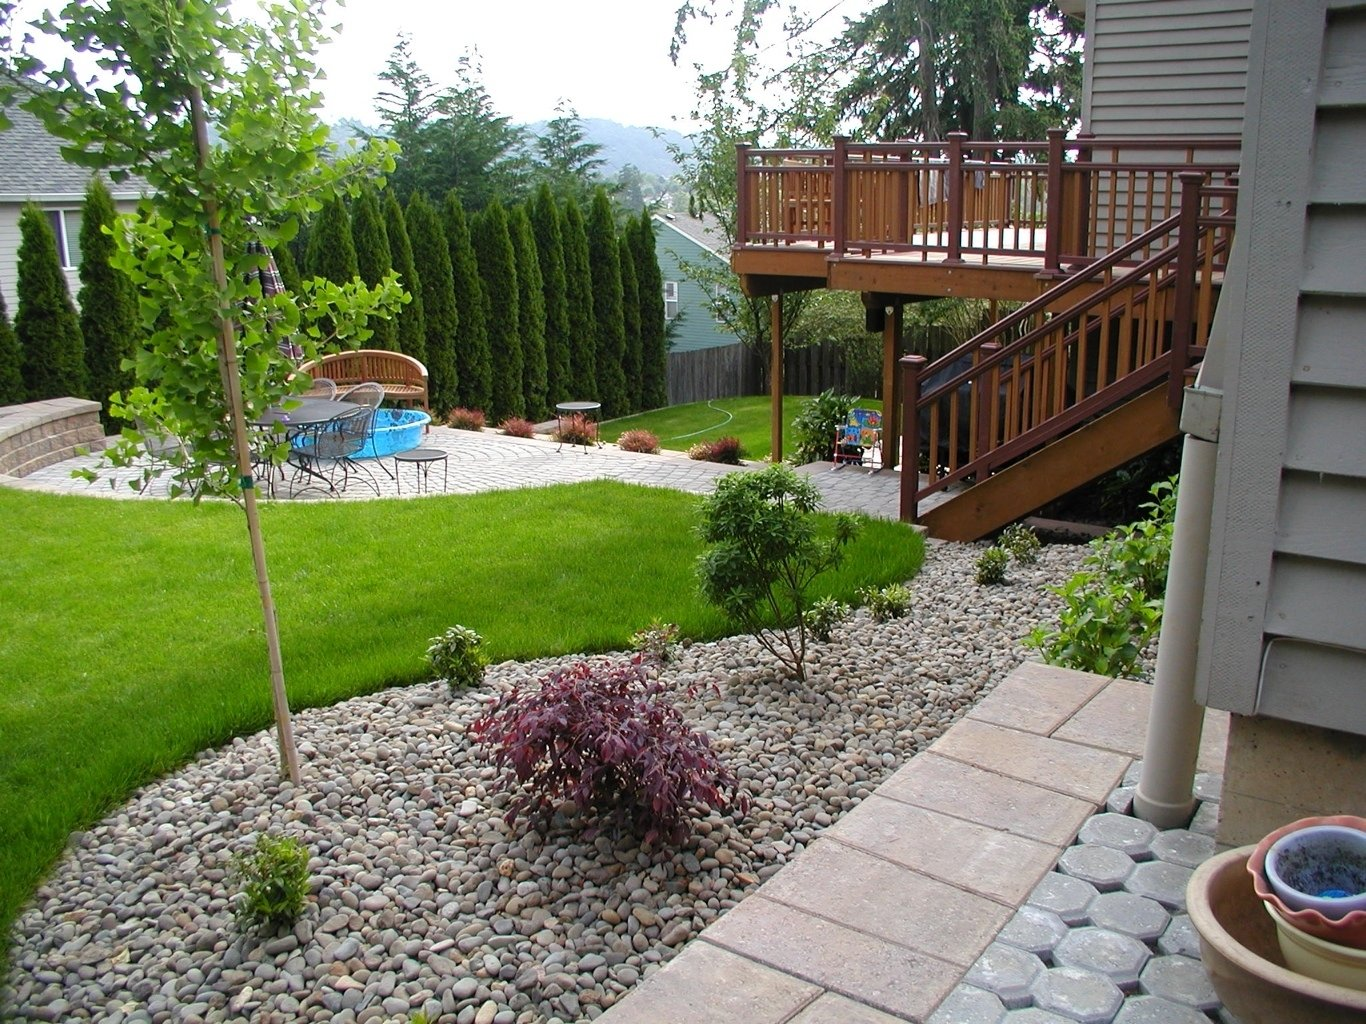 10 Most Recommended Backyard Landscaping Ideas For Privacy small landscaping ideas for backyard designs for privacy 2020